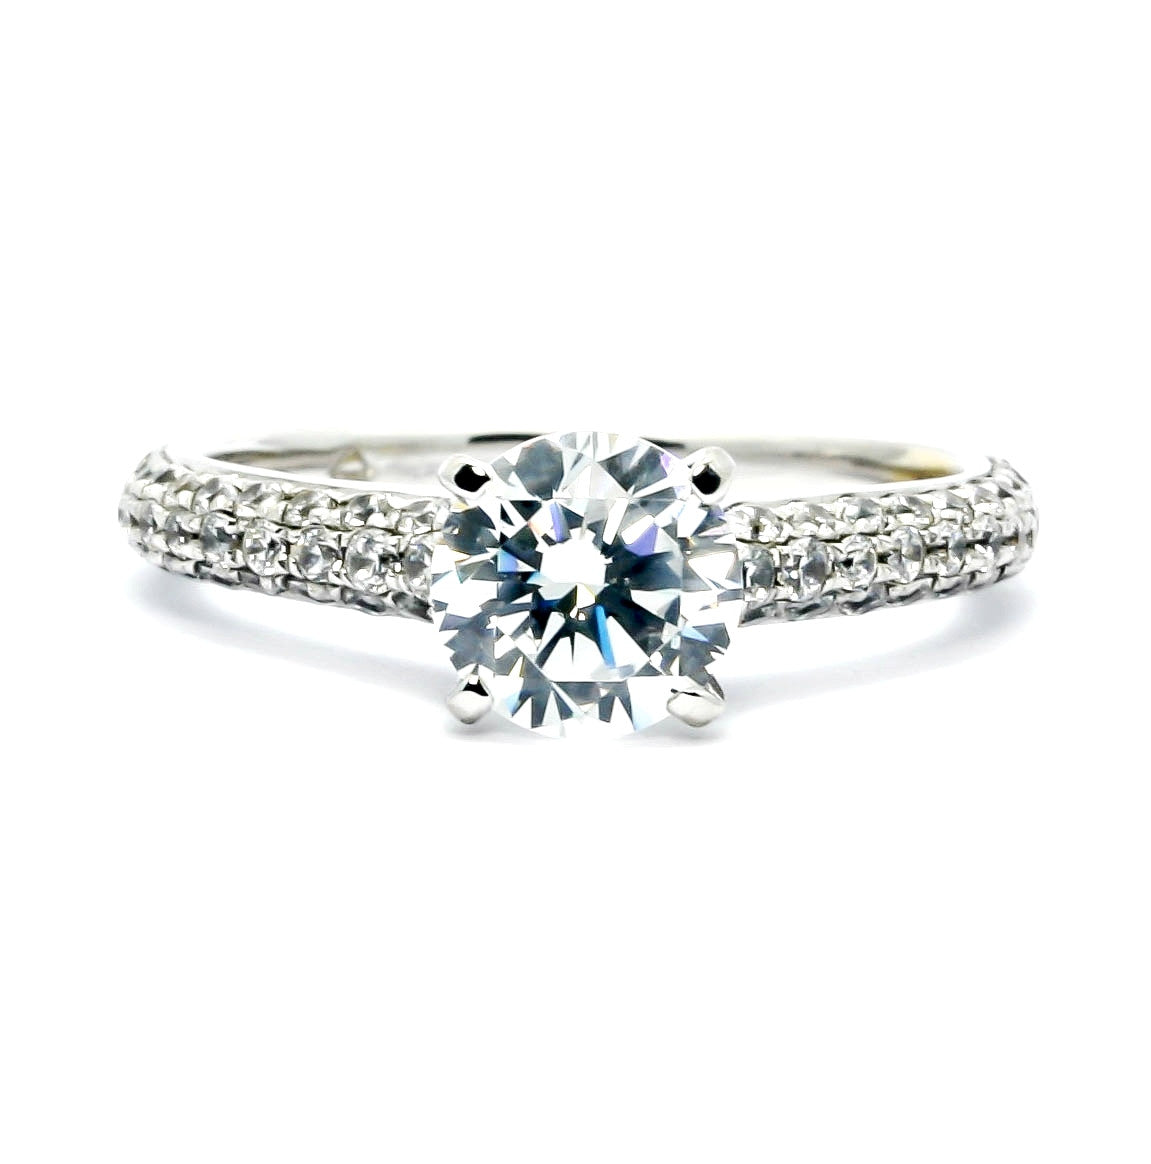 Solitaire Engagement Ring with 1 Carat Forever Brilliant Moissanite & .75 Carat Diamonds - FB73765